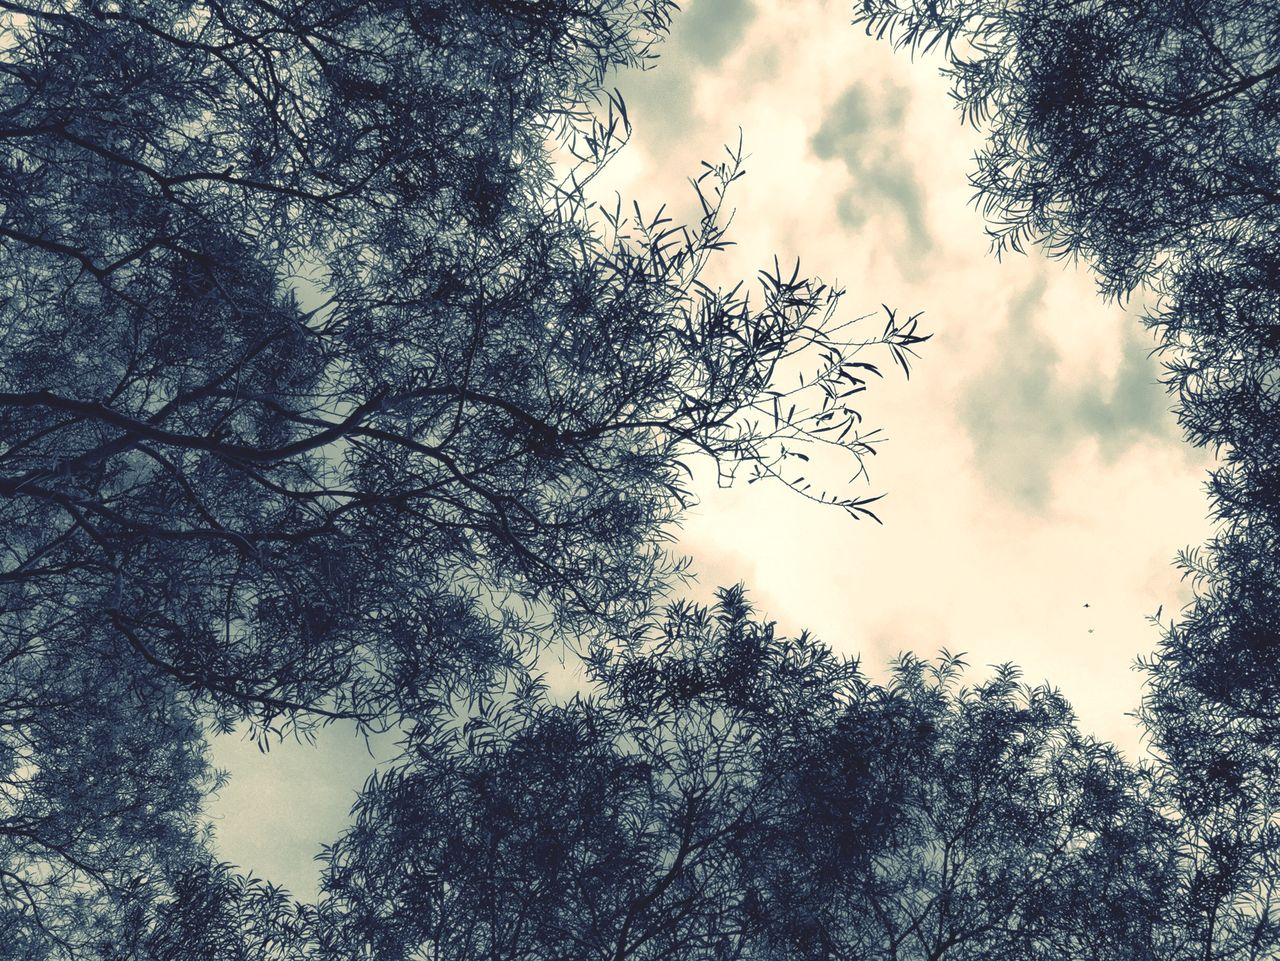 Low Angle View Of Tree Against Overcast Sky